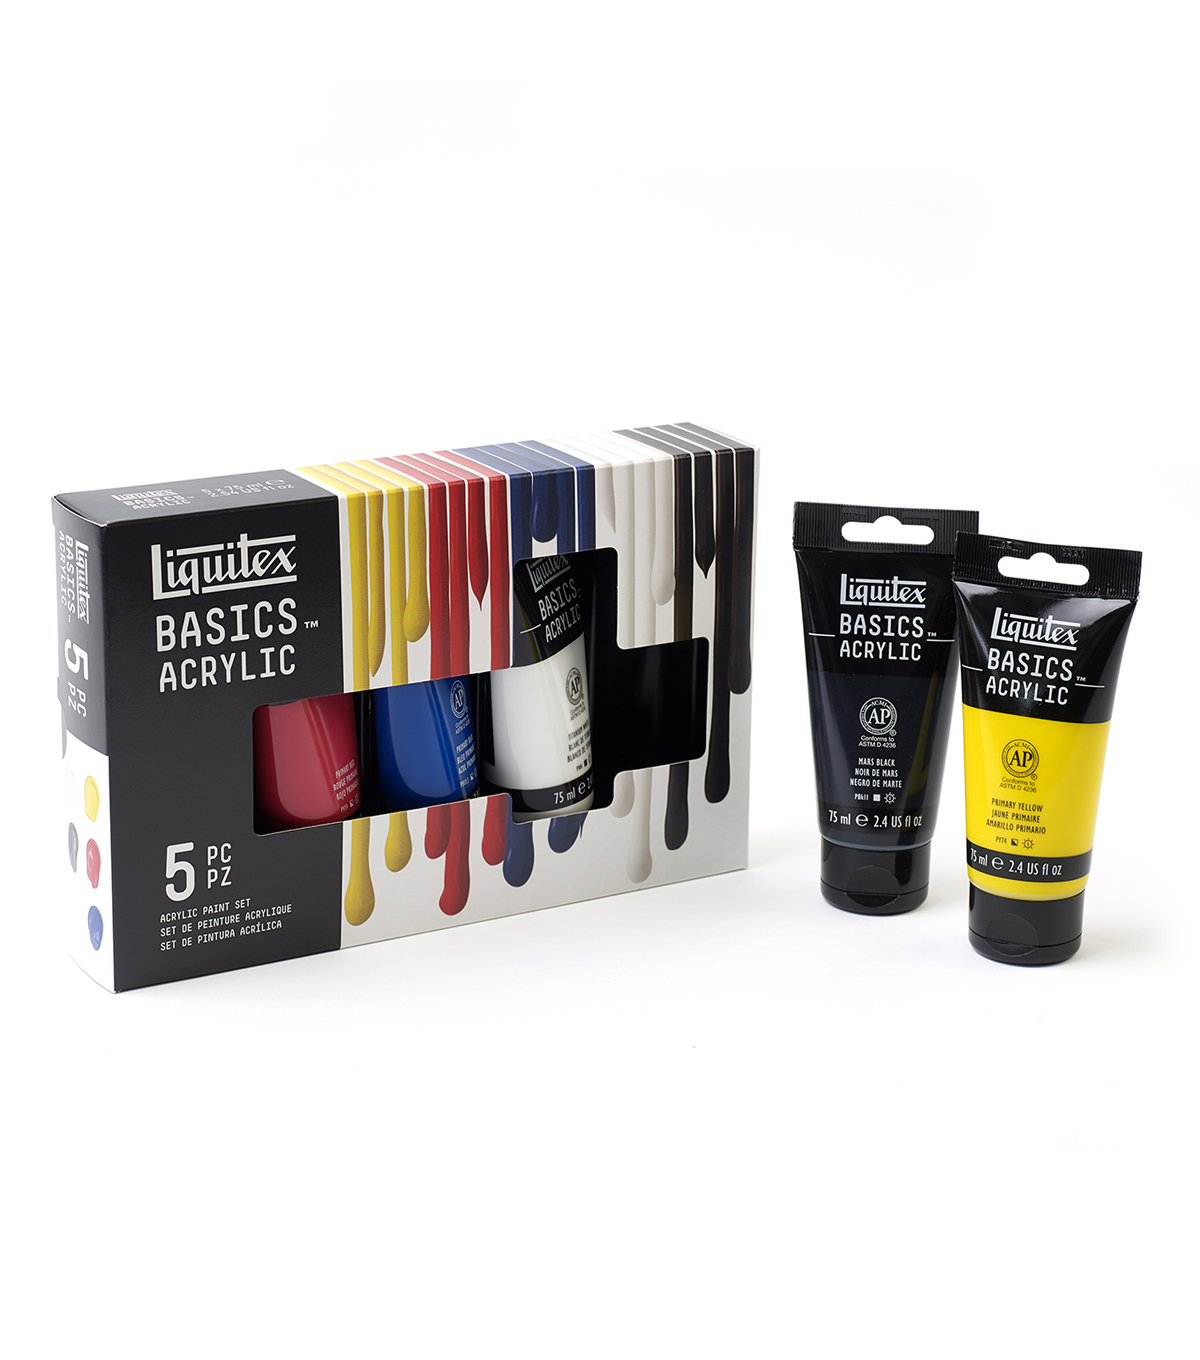 Liquitex Basics Acrylic Paint Set 75ml 5Pk